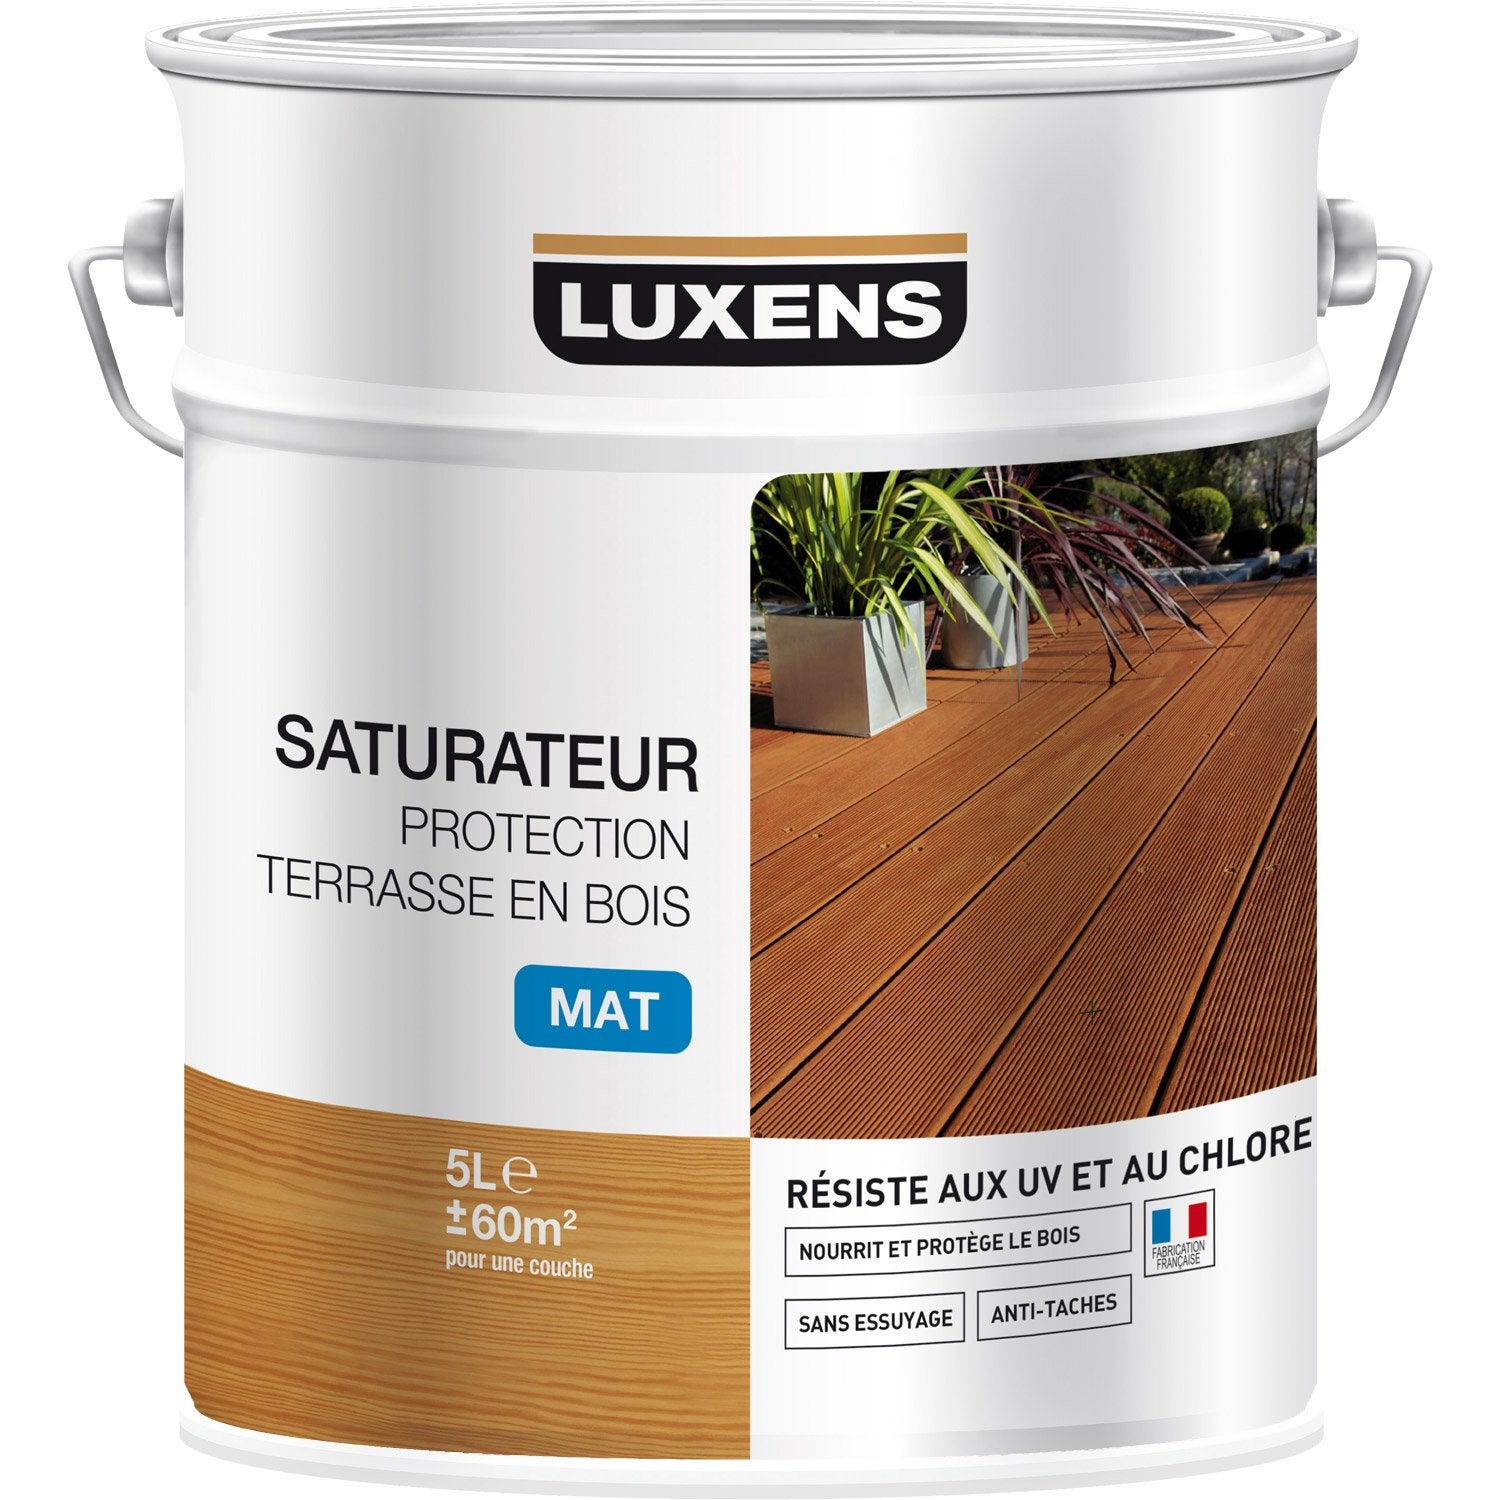 Attrayant Saturateur LUXENS Saturateur Protection Terrasse En Bois 5 L, Teck ... Belle Conception